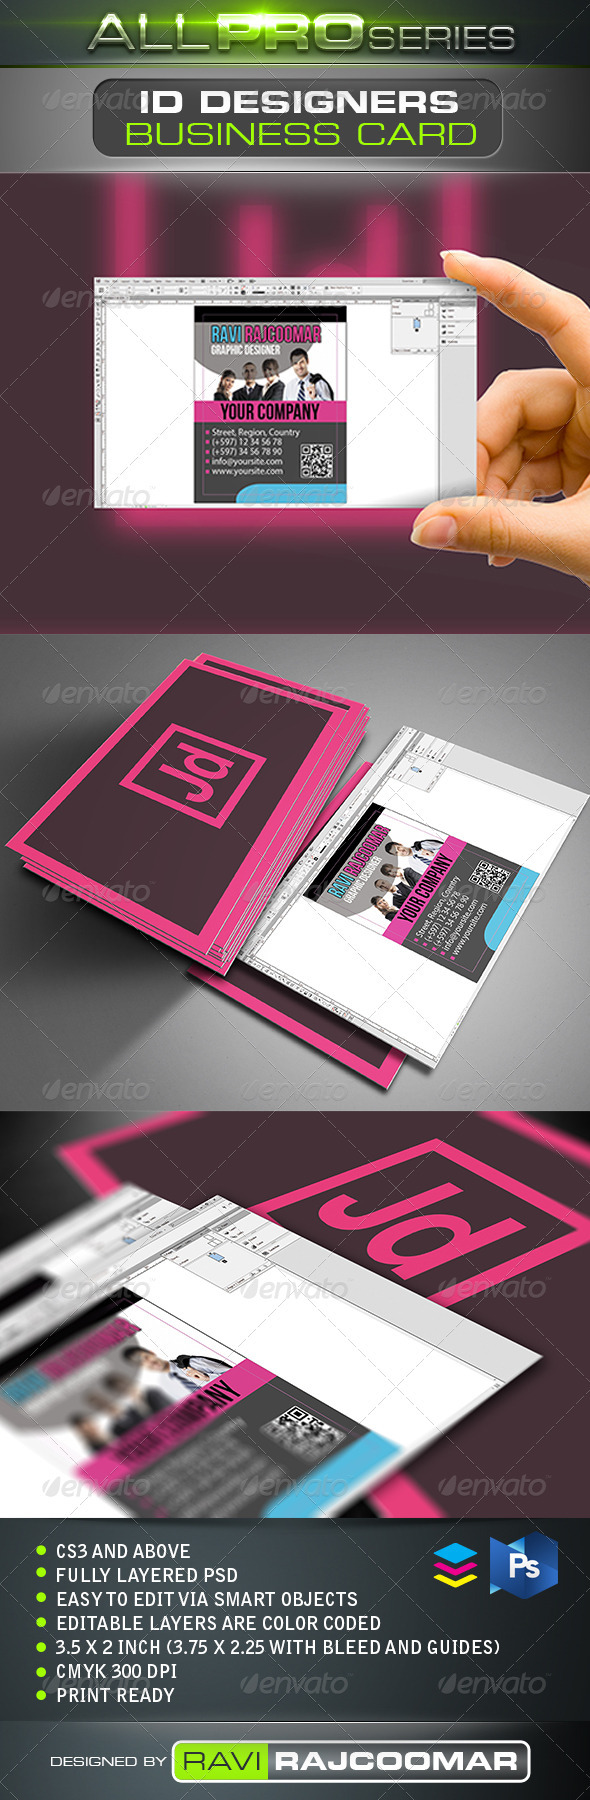 ID Designers Business Card - Creative Business Cards